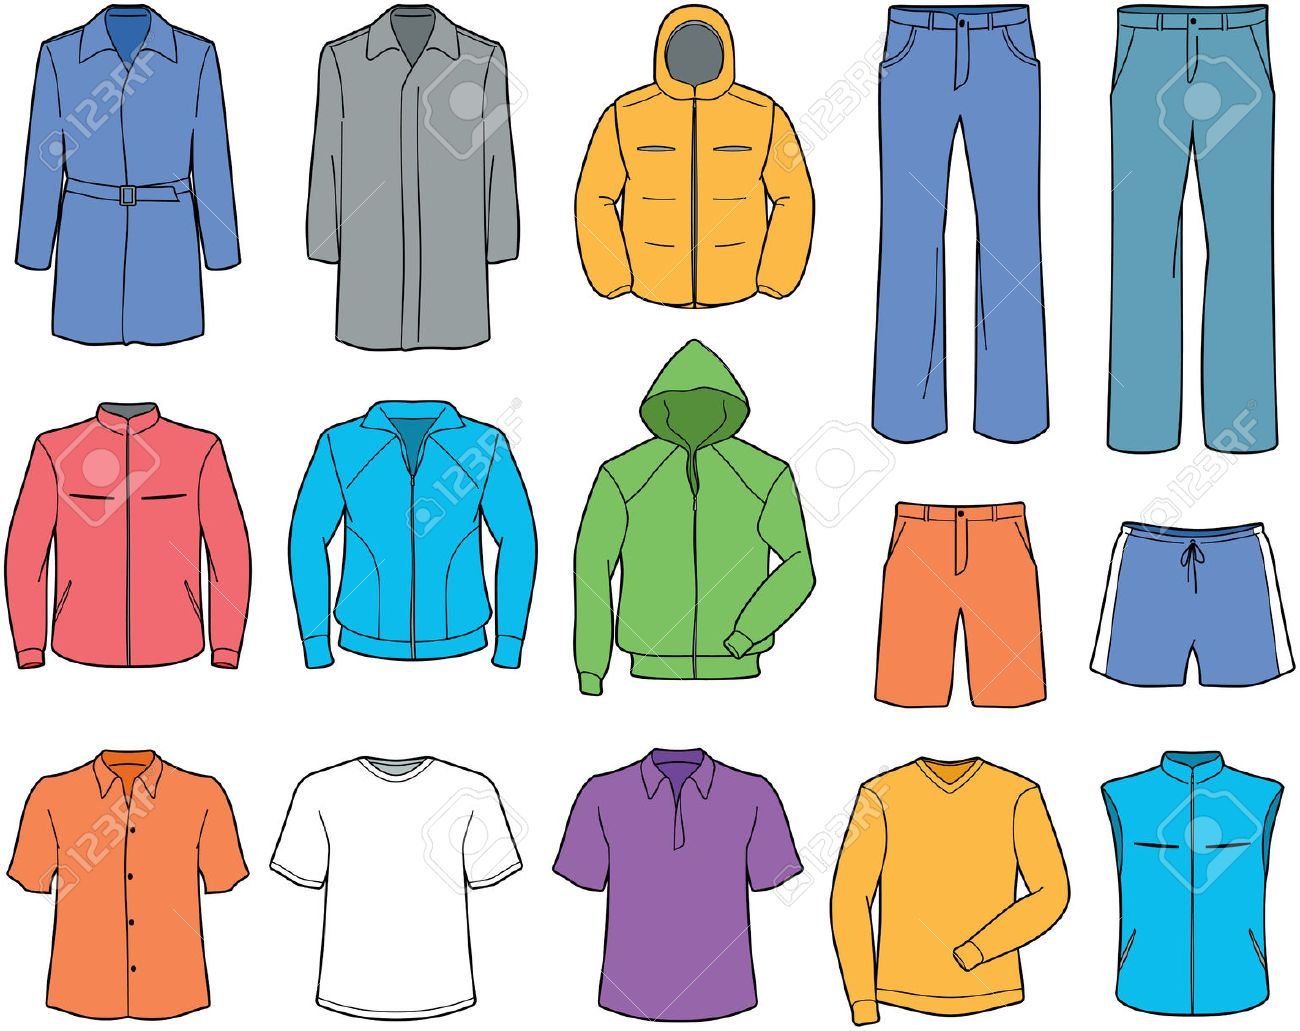 Fall clothes clipart clip art freeuse download Fall clothes clipart 3 » Clipart Portal clip art freeuse download